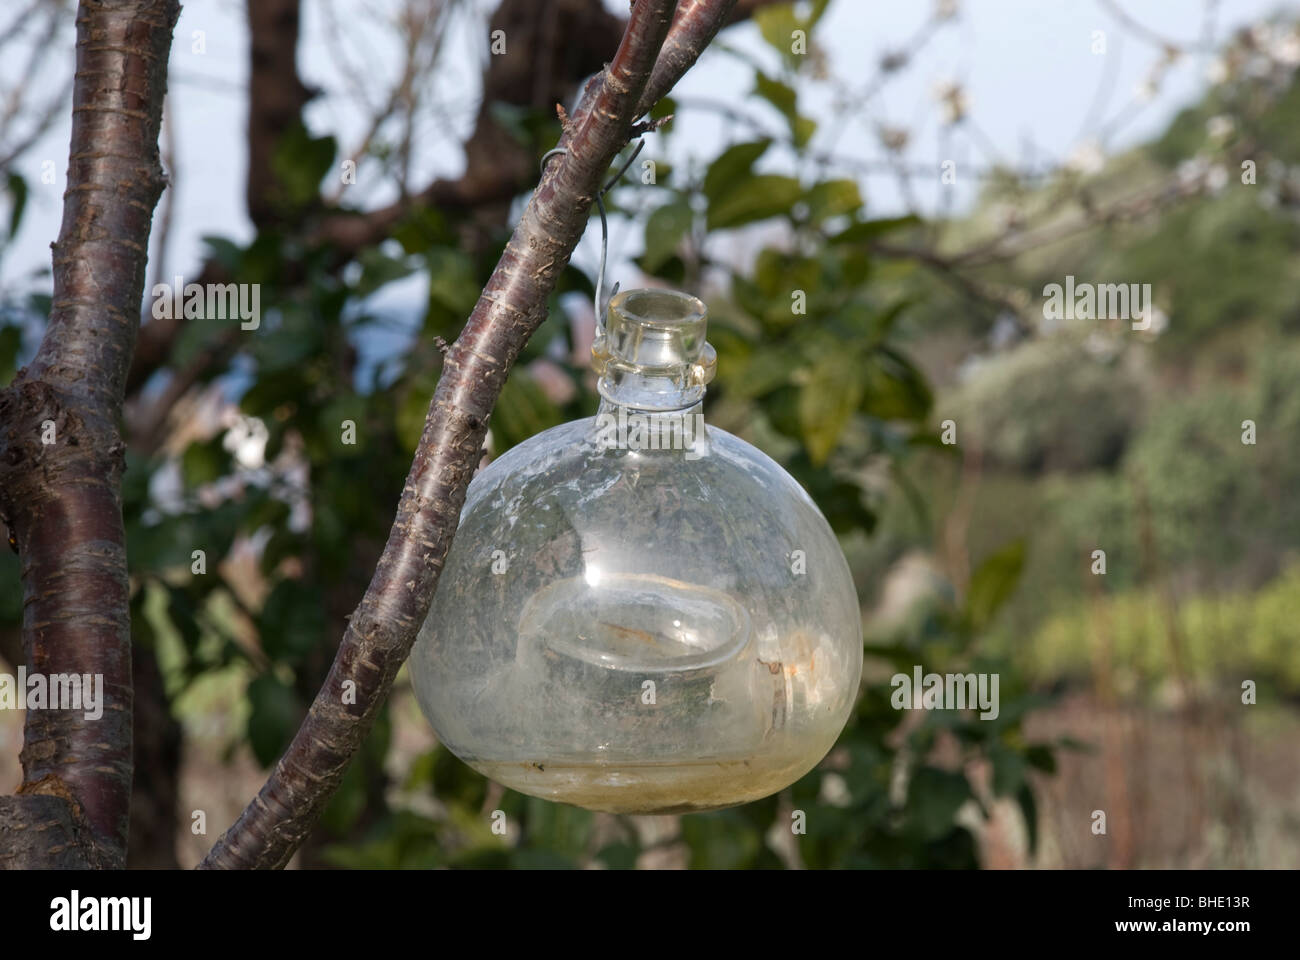 glass vessel for catching insect pests in trees Stock Photo